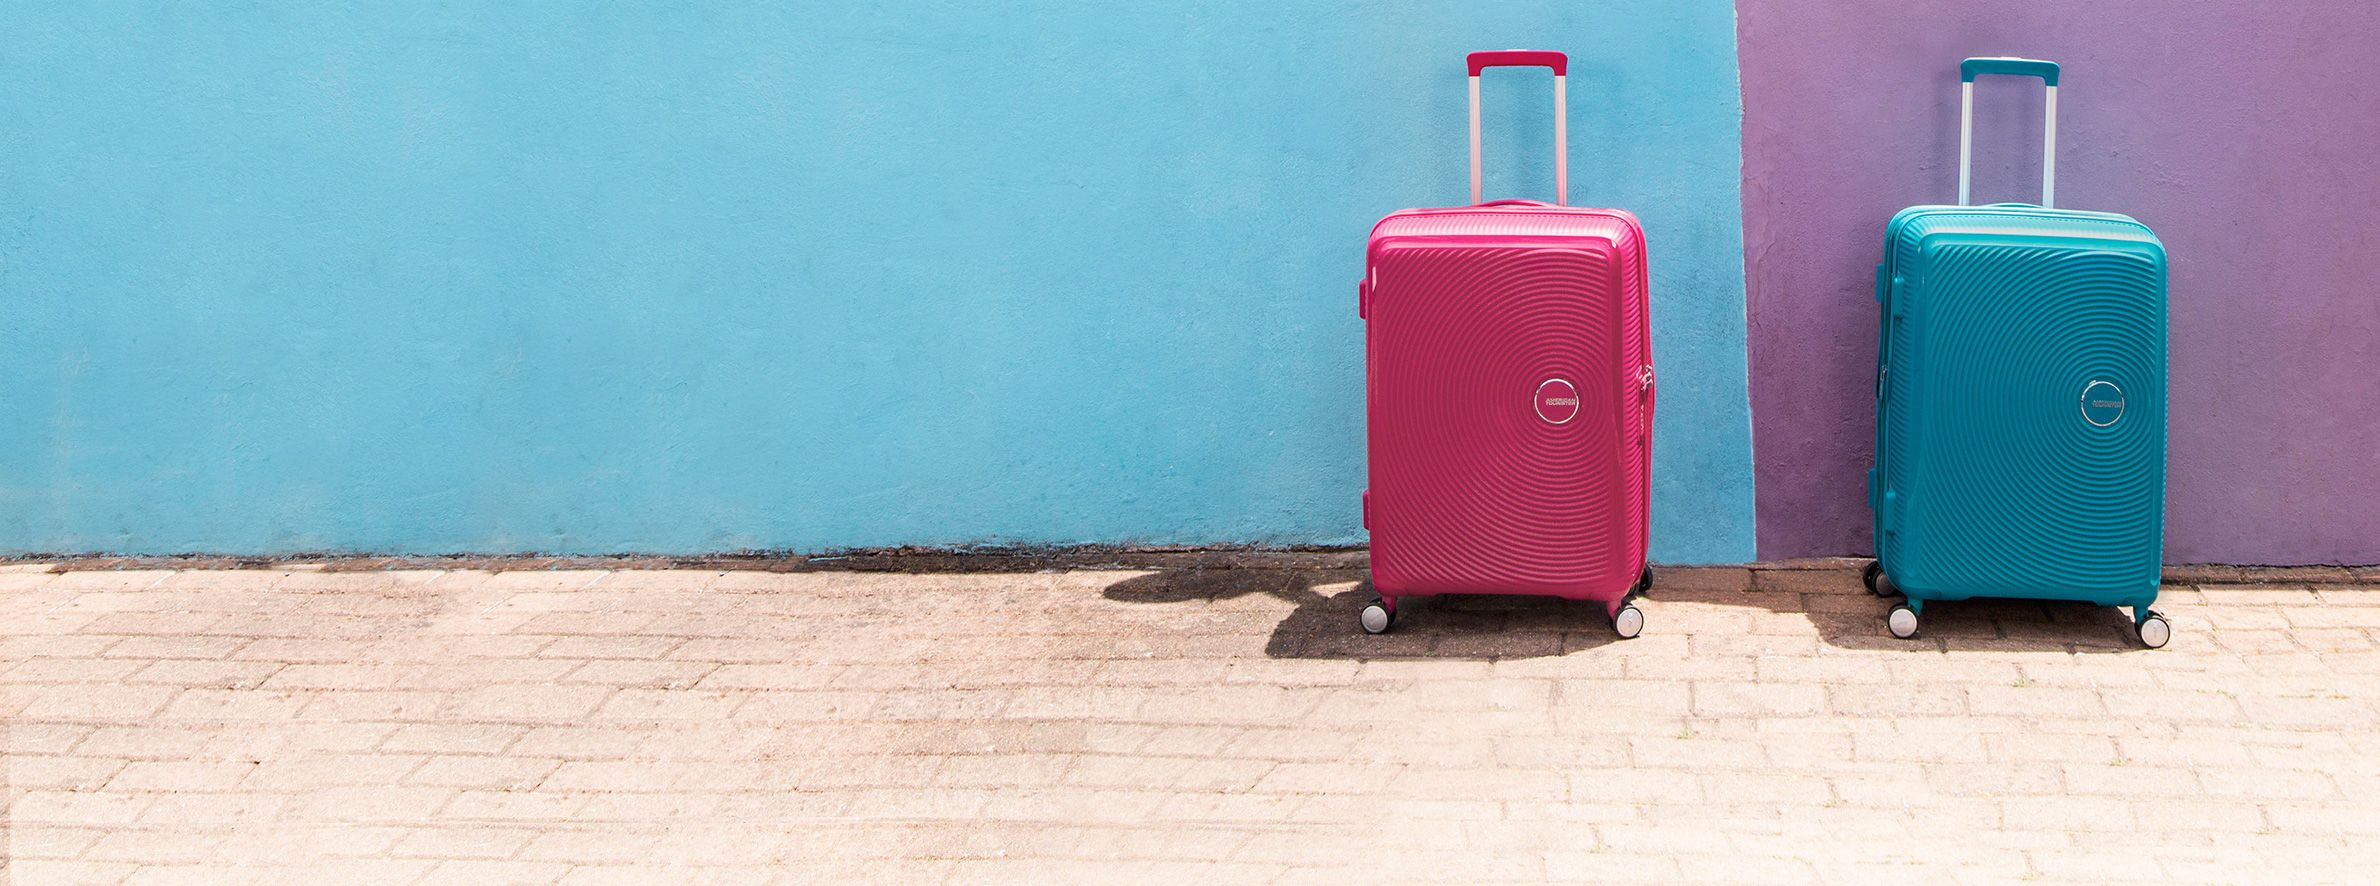 american tourister is an expert in bright fun and quality luggage at affordable prices choose from the brands herolite sunside and soundbox collections